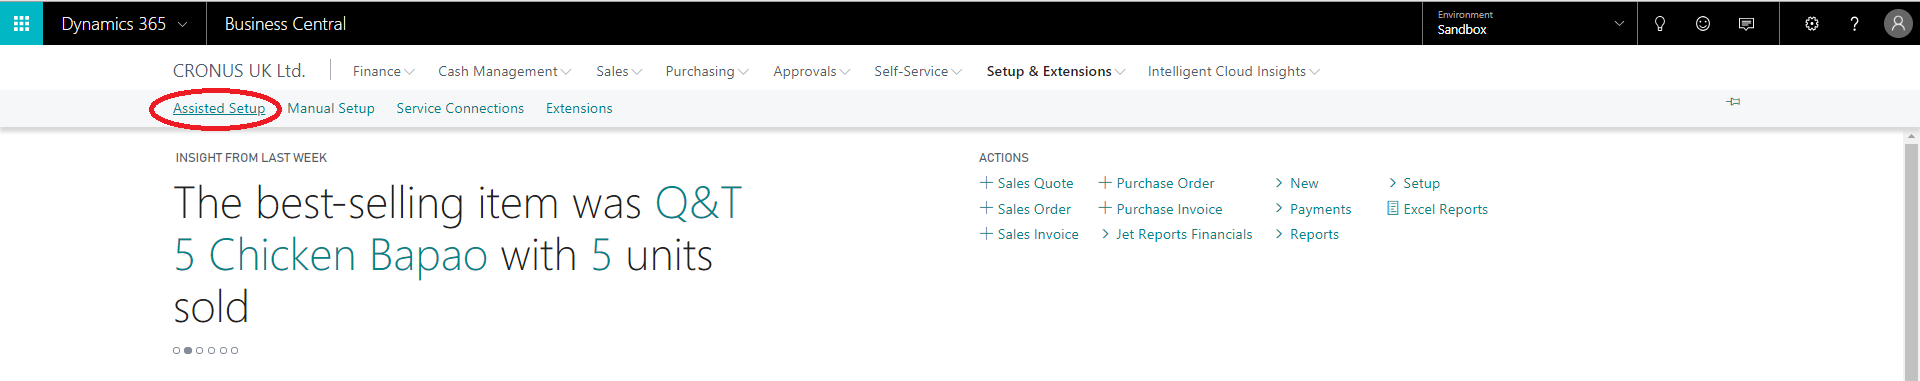 Finding the assisted setup menu in Microsoft Dynamics 365 Business Central;